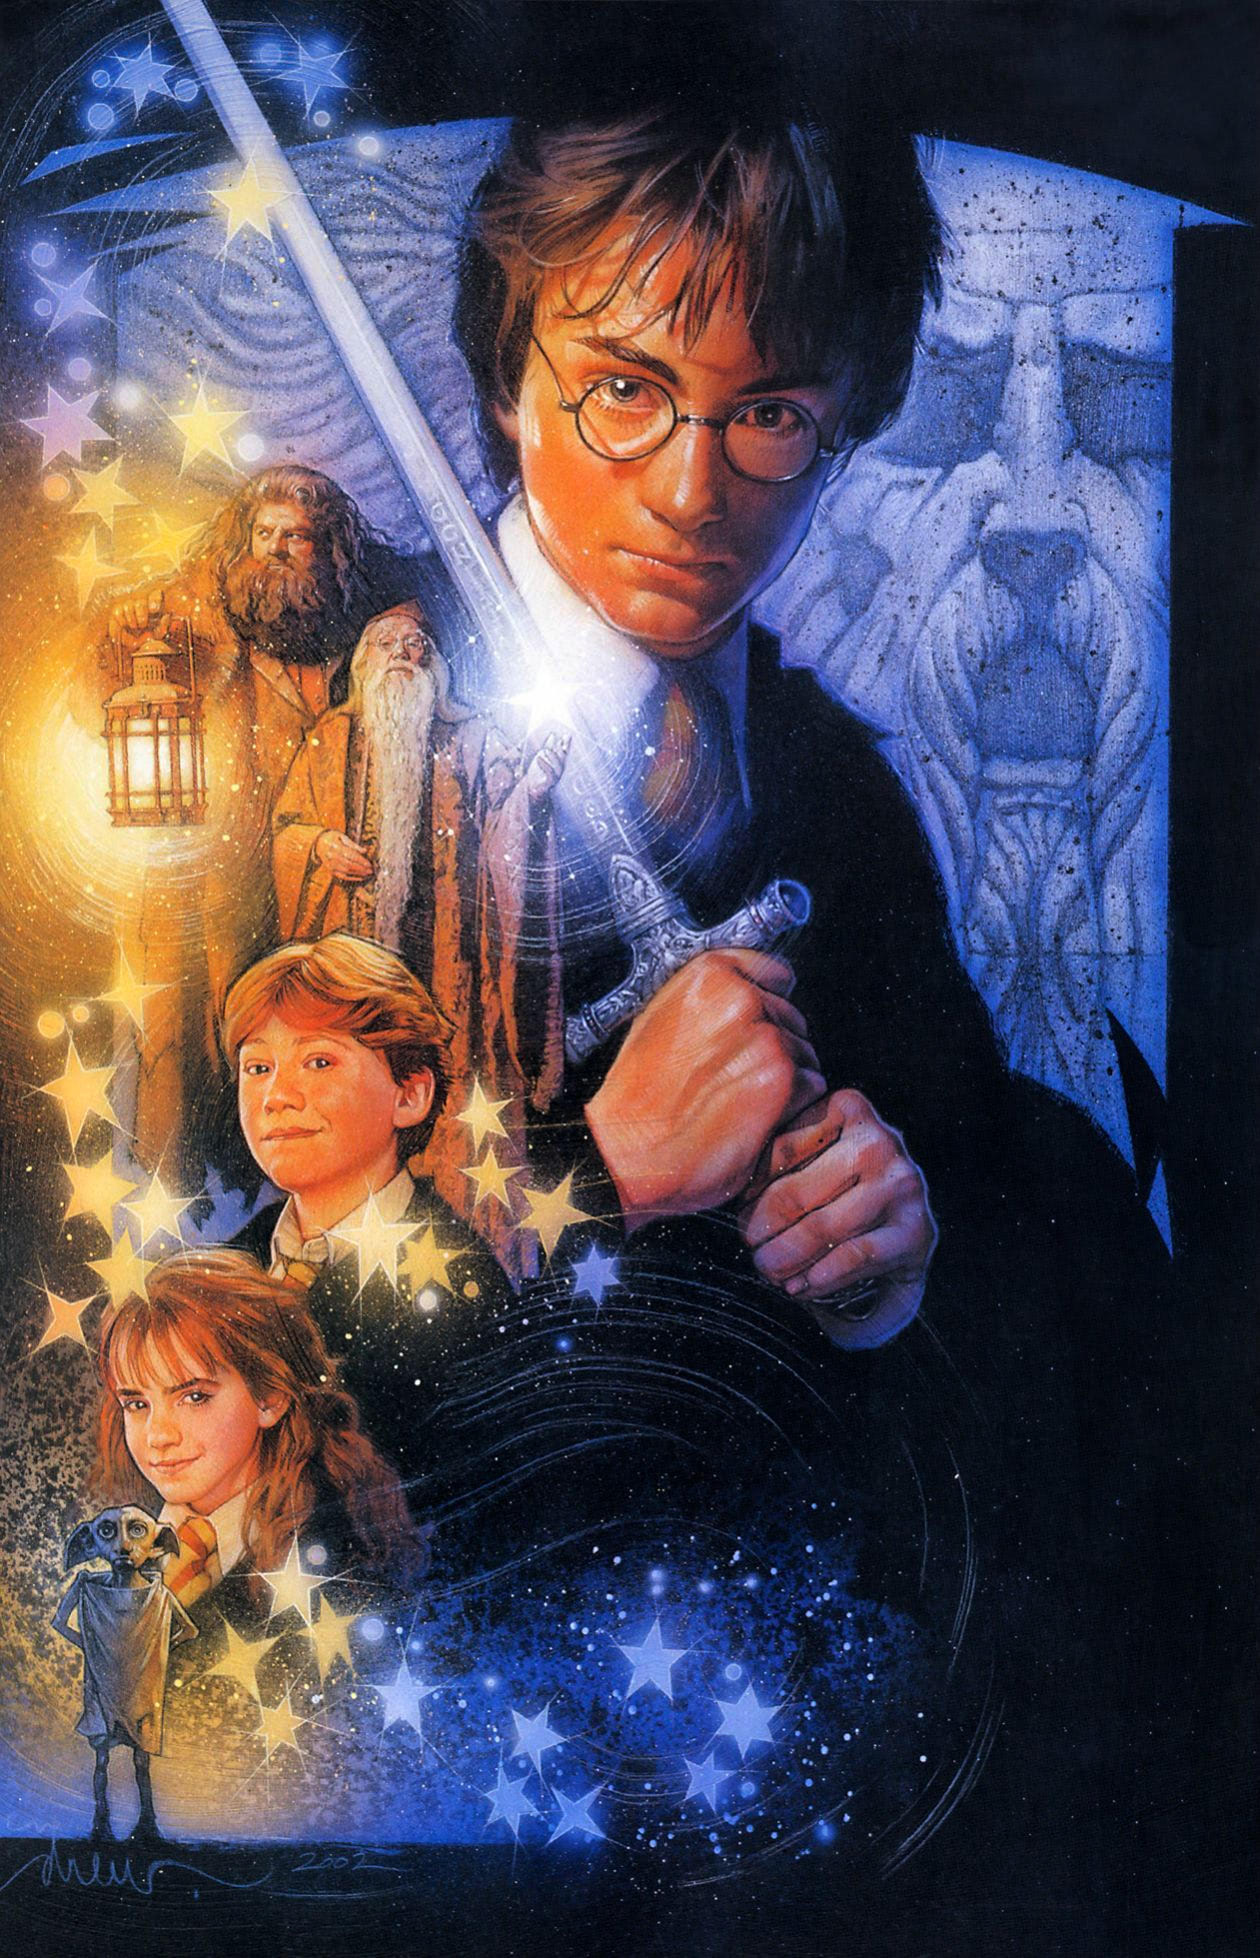 'Chamber of Secrets' (unfinished) Drew Struzan poster